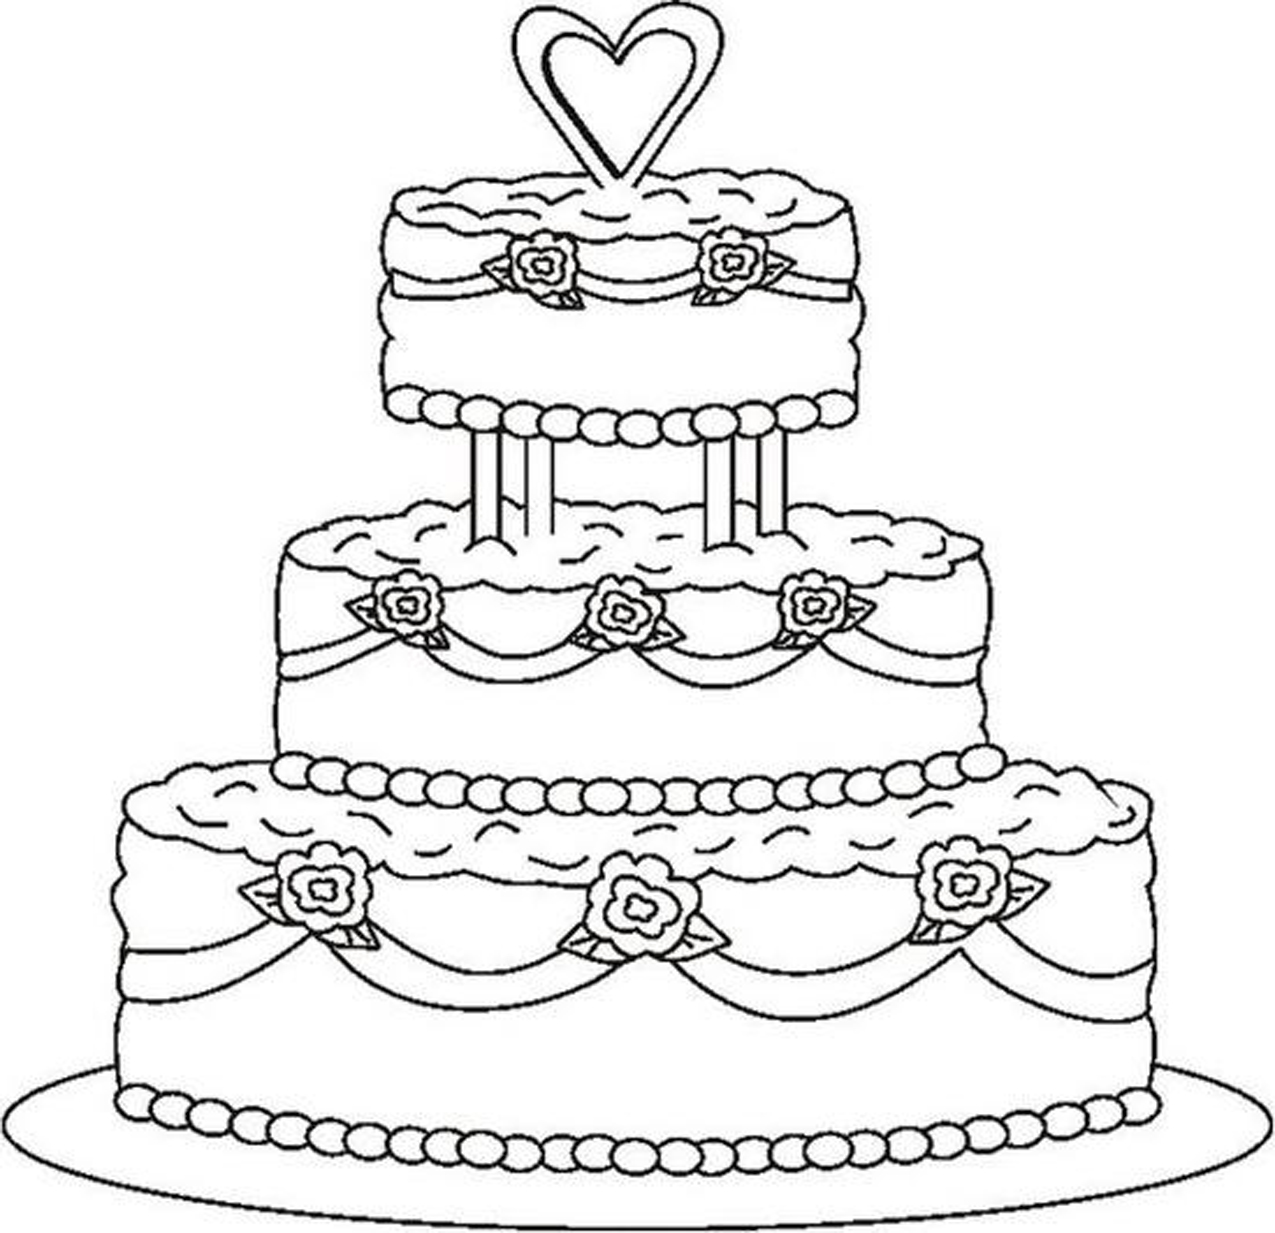 download wedding coloring pages 13 - Wedding Coloring Books